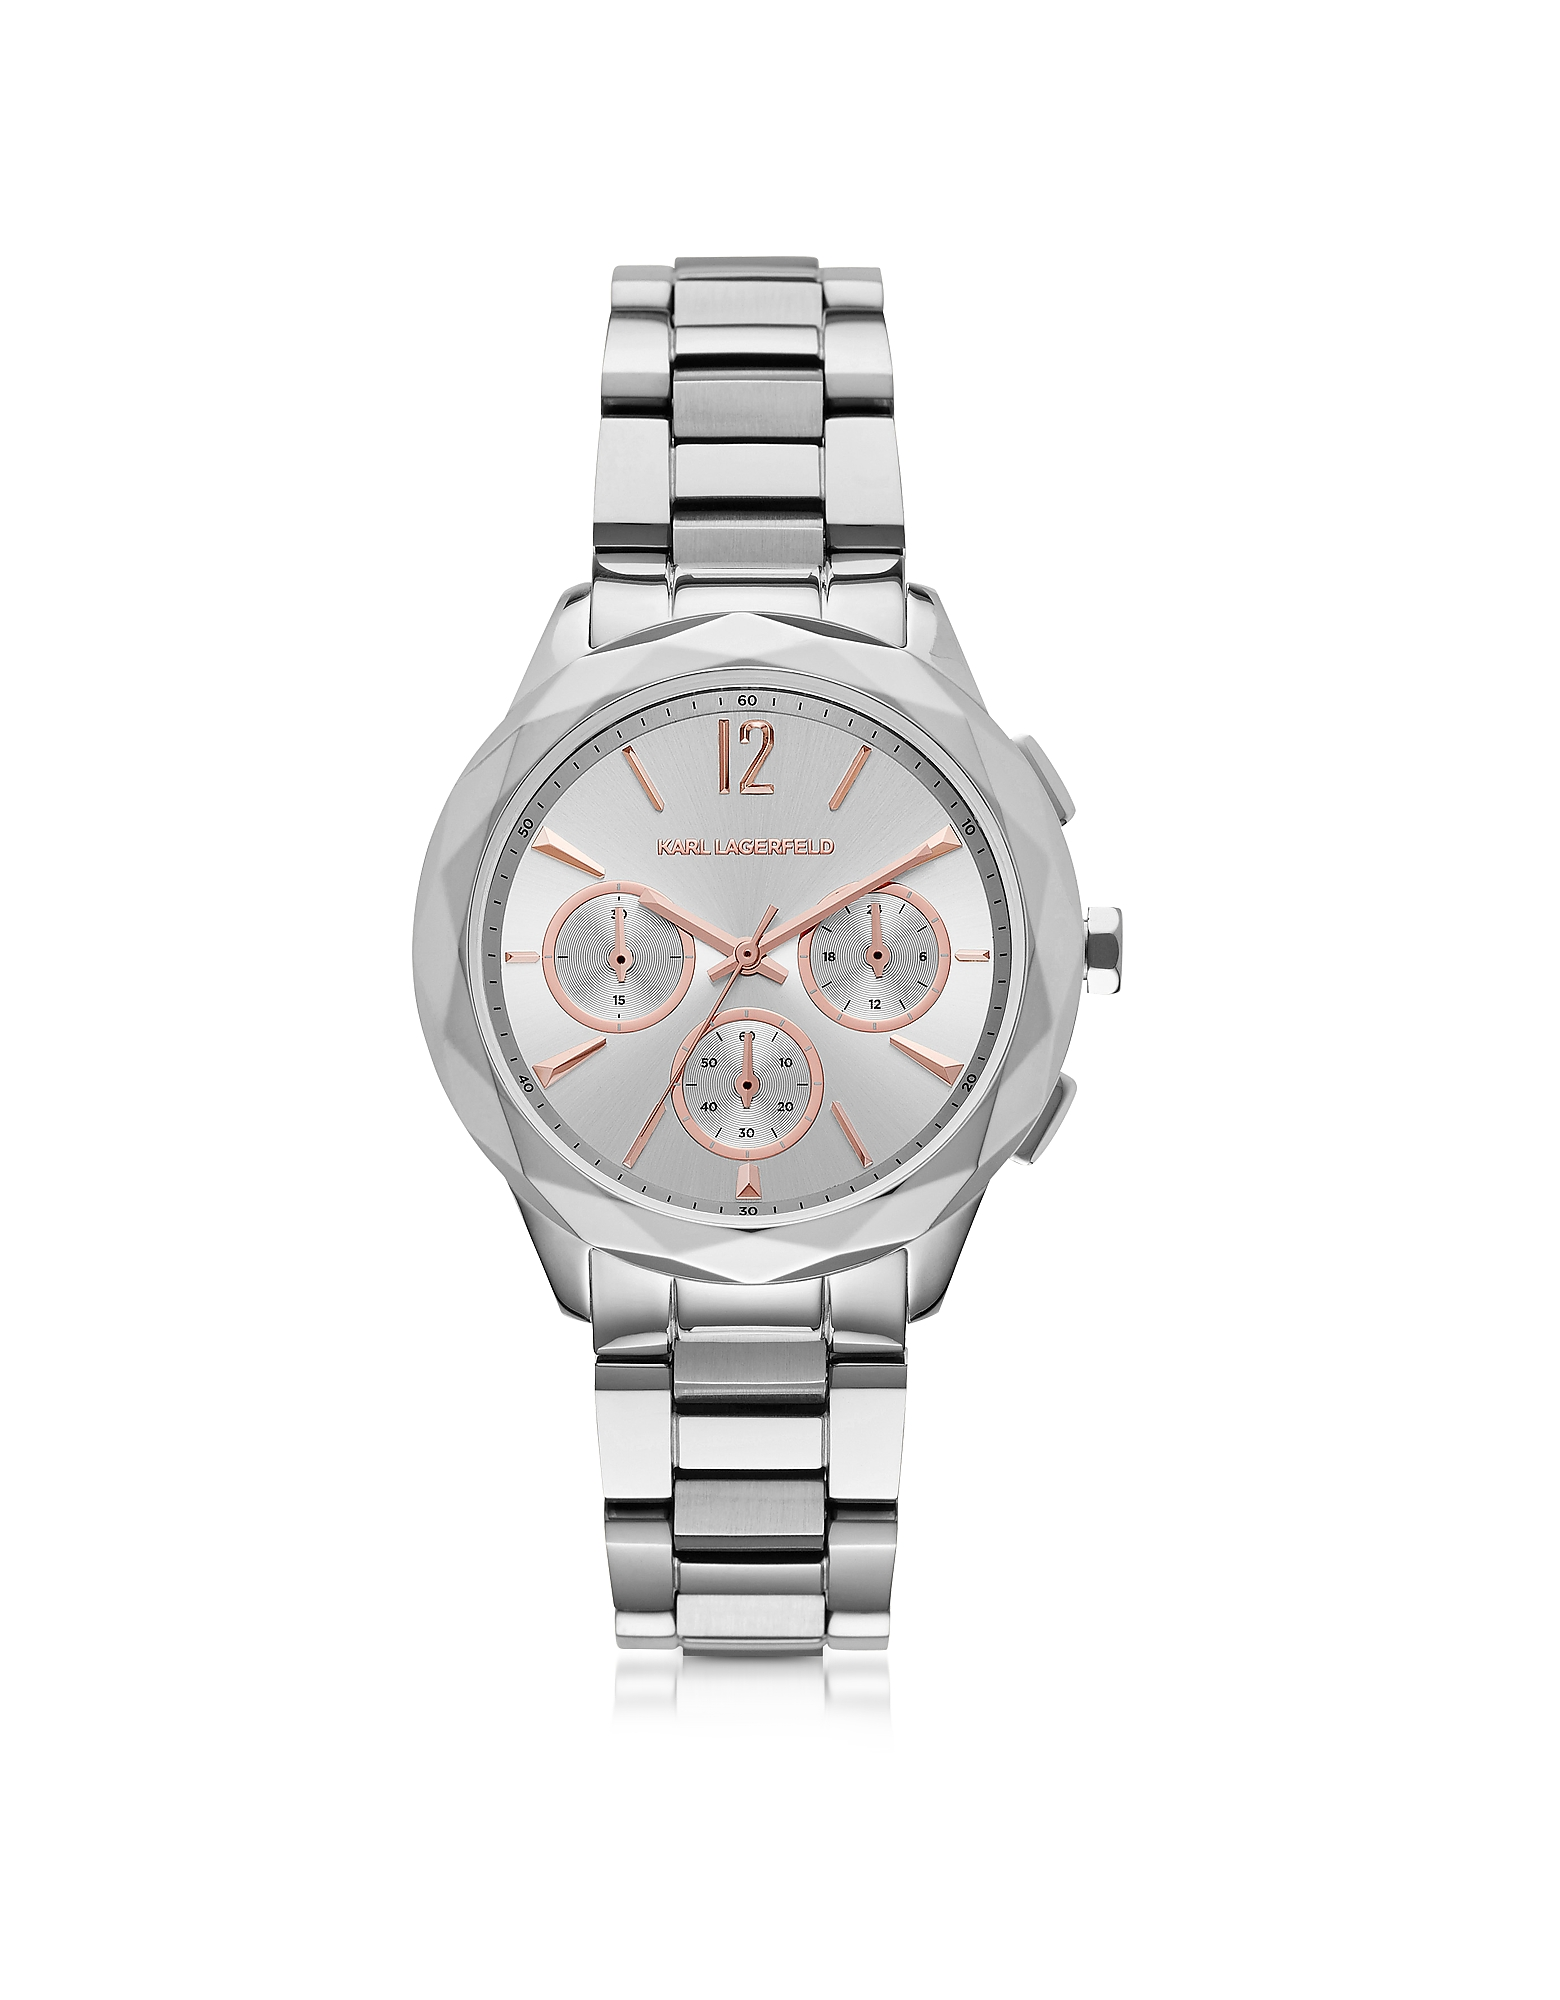 Karl Lagerfeld Women's Watches, Optik Stainless Steel Women's Chronograph Watch